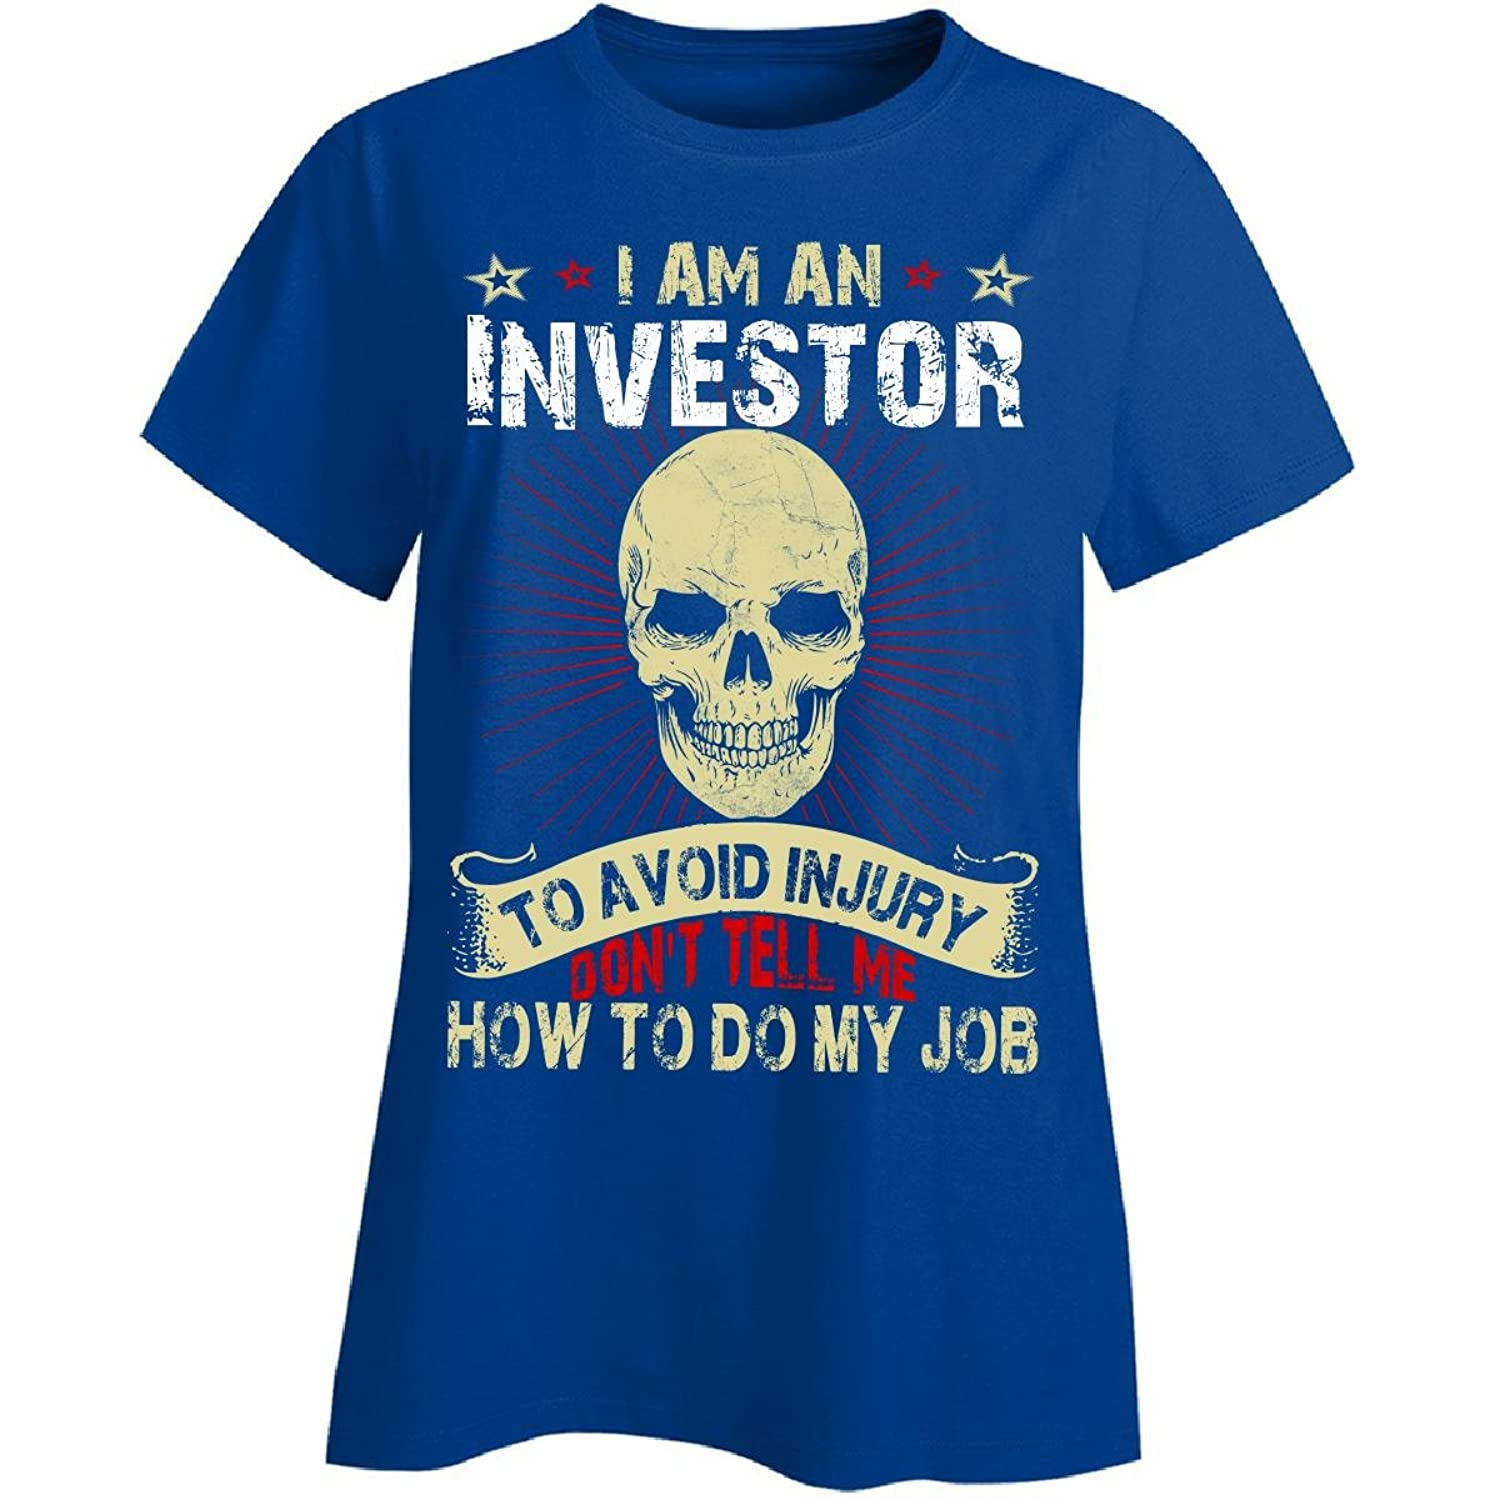 Im An Investor. Dont Tell Me How To Do My Job - Ladies T-shirt